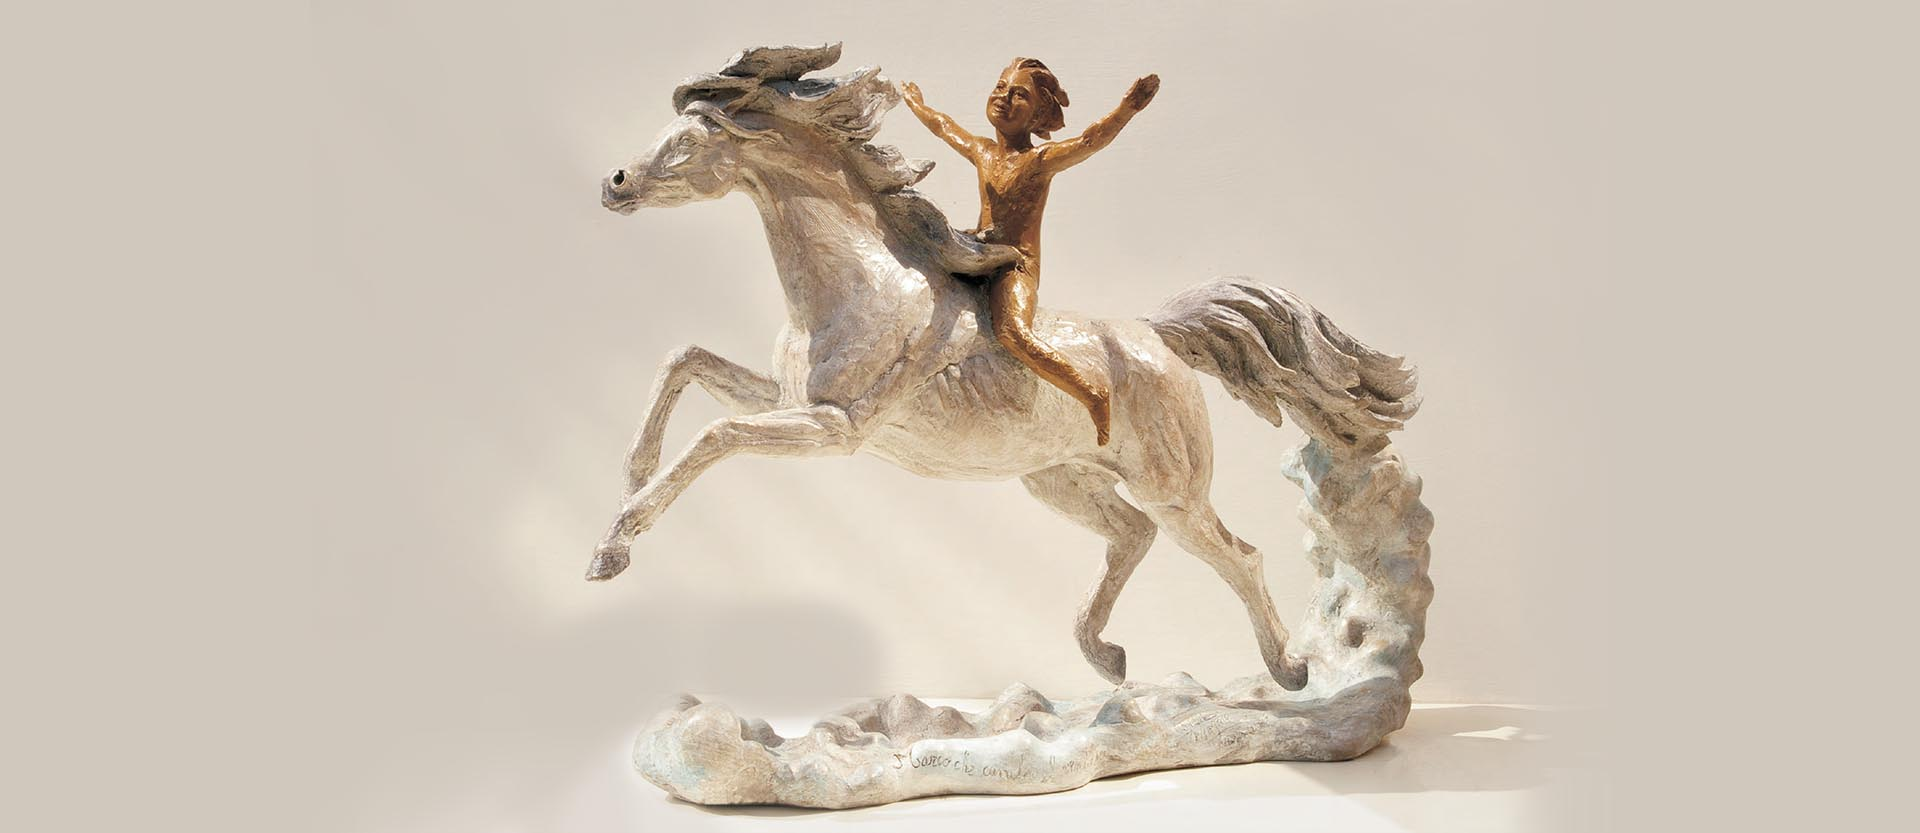 bronze-sculptures-various-occasions-cover01